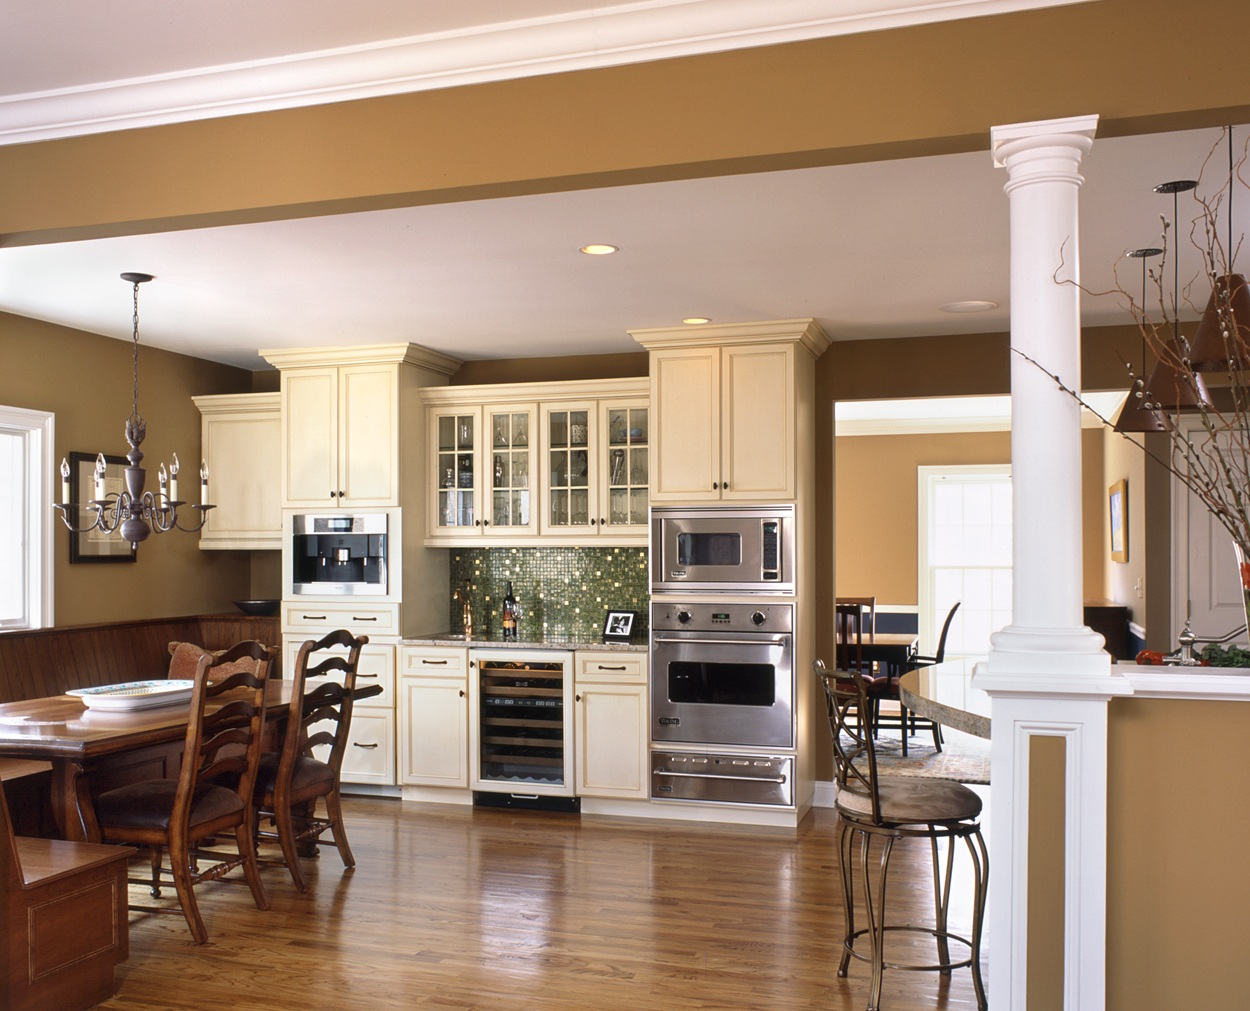 Breakfast bar and coffee area anchors this Clark Construction kitchen design.